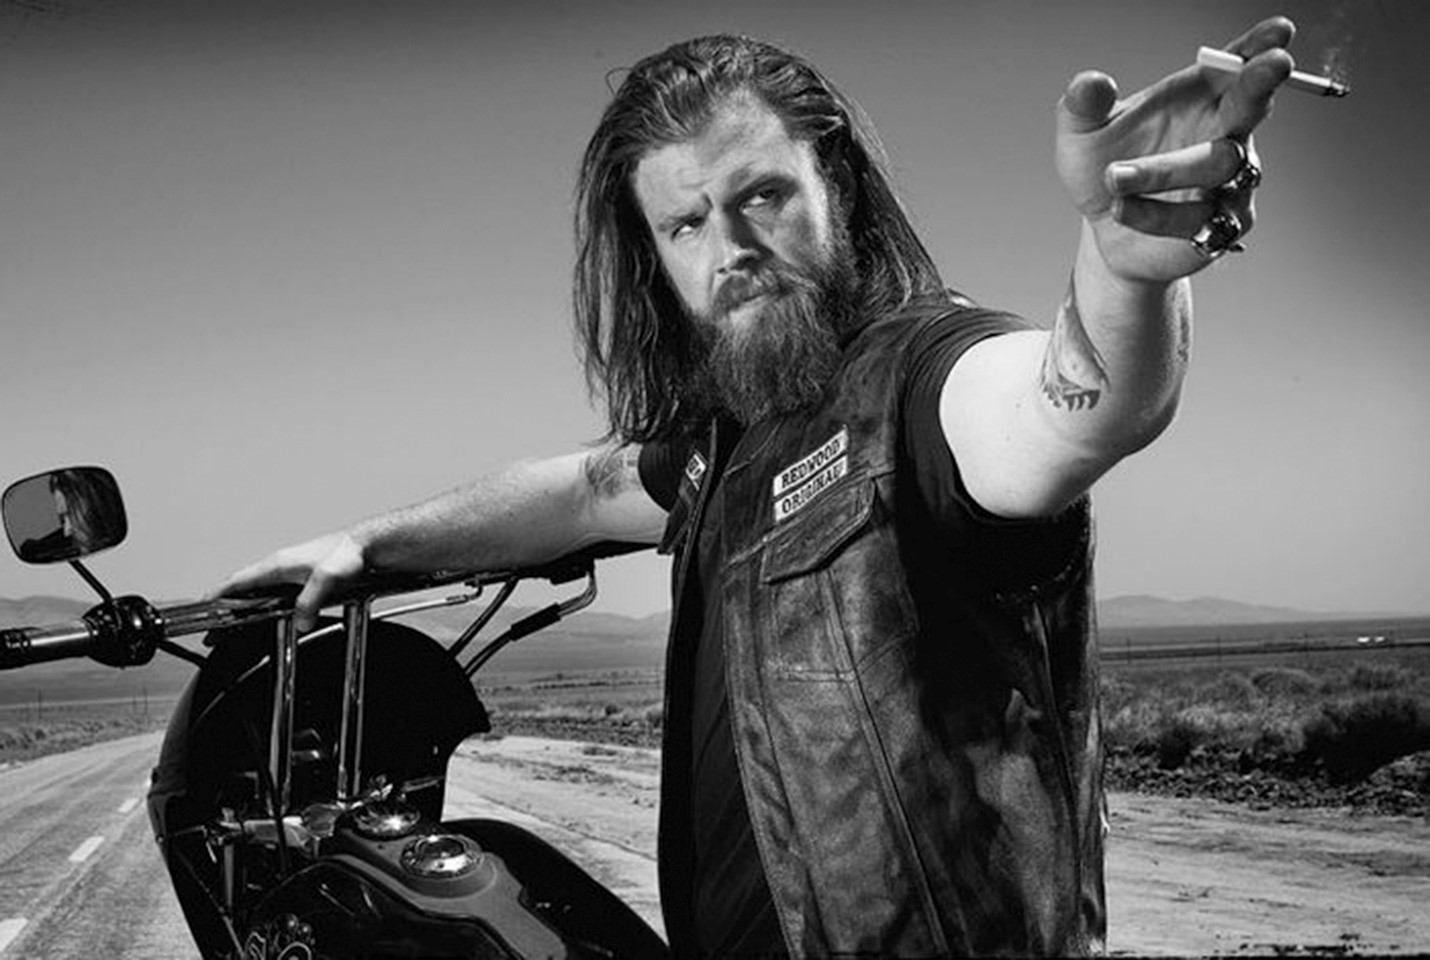 Sons of anarchy star ryan hurst makes pit stop at soboba casino sons of anarchy star ryan hurst makes pit stop at soboba casino kristyandbryce Choice Image